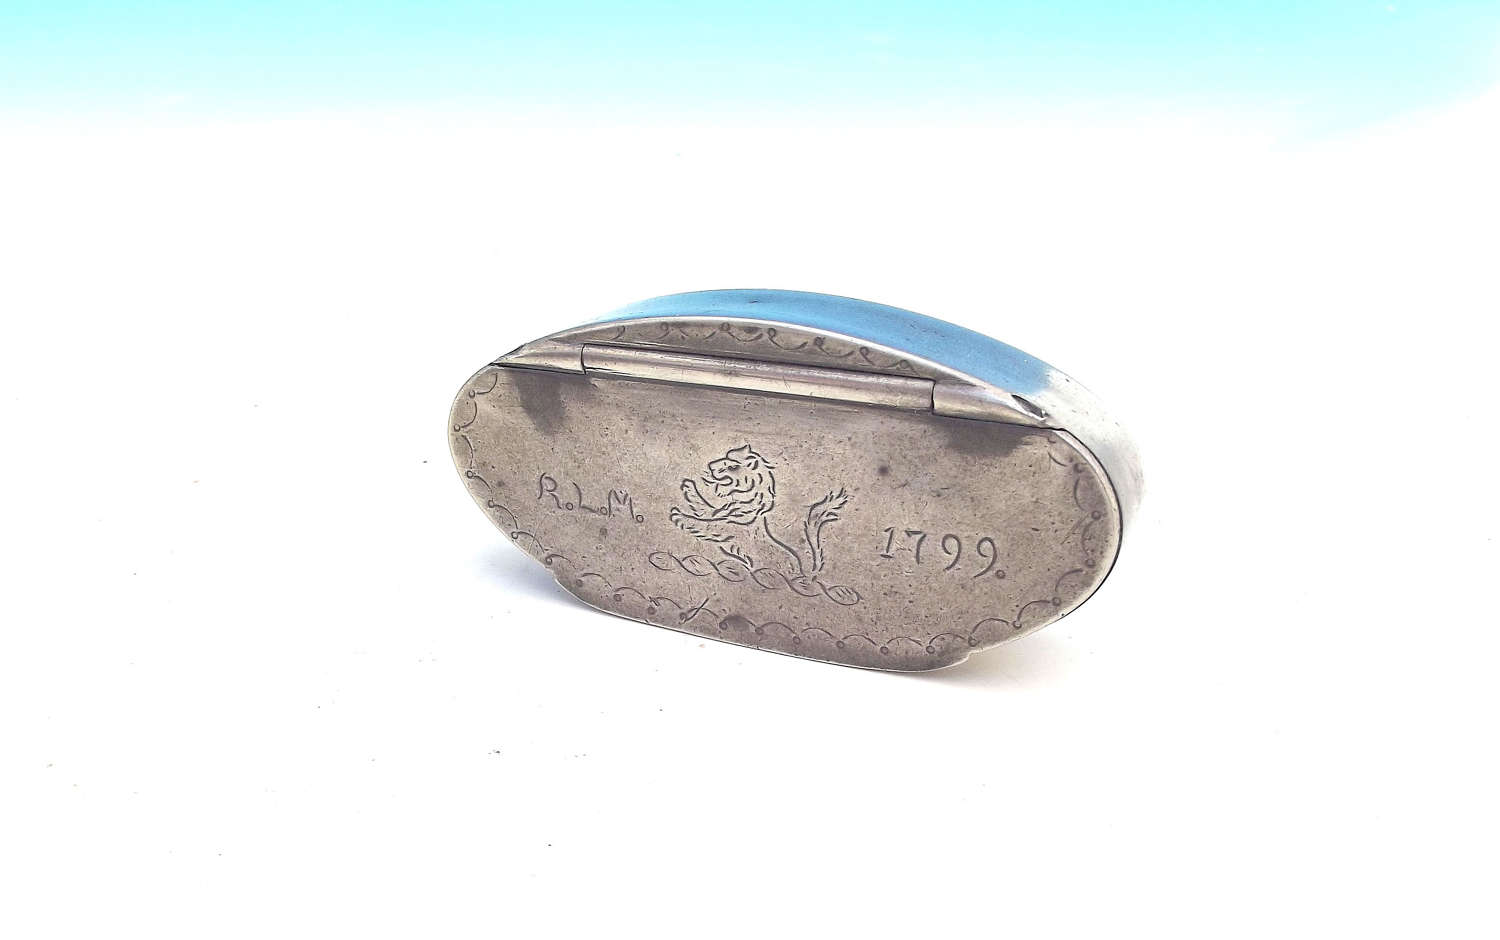 Antique Metalware 18thc Pewter Snuff Box RLM dated 1799. English